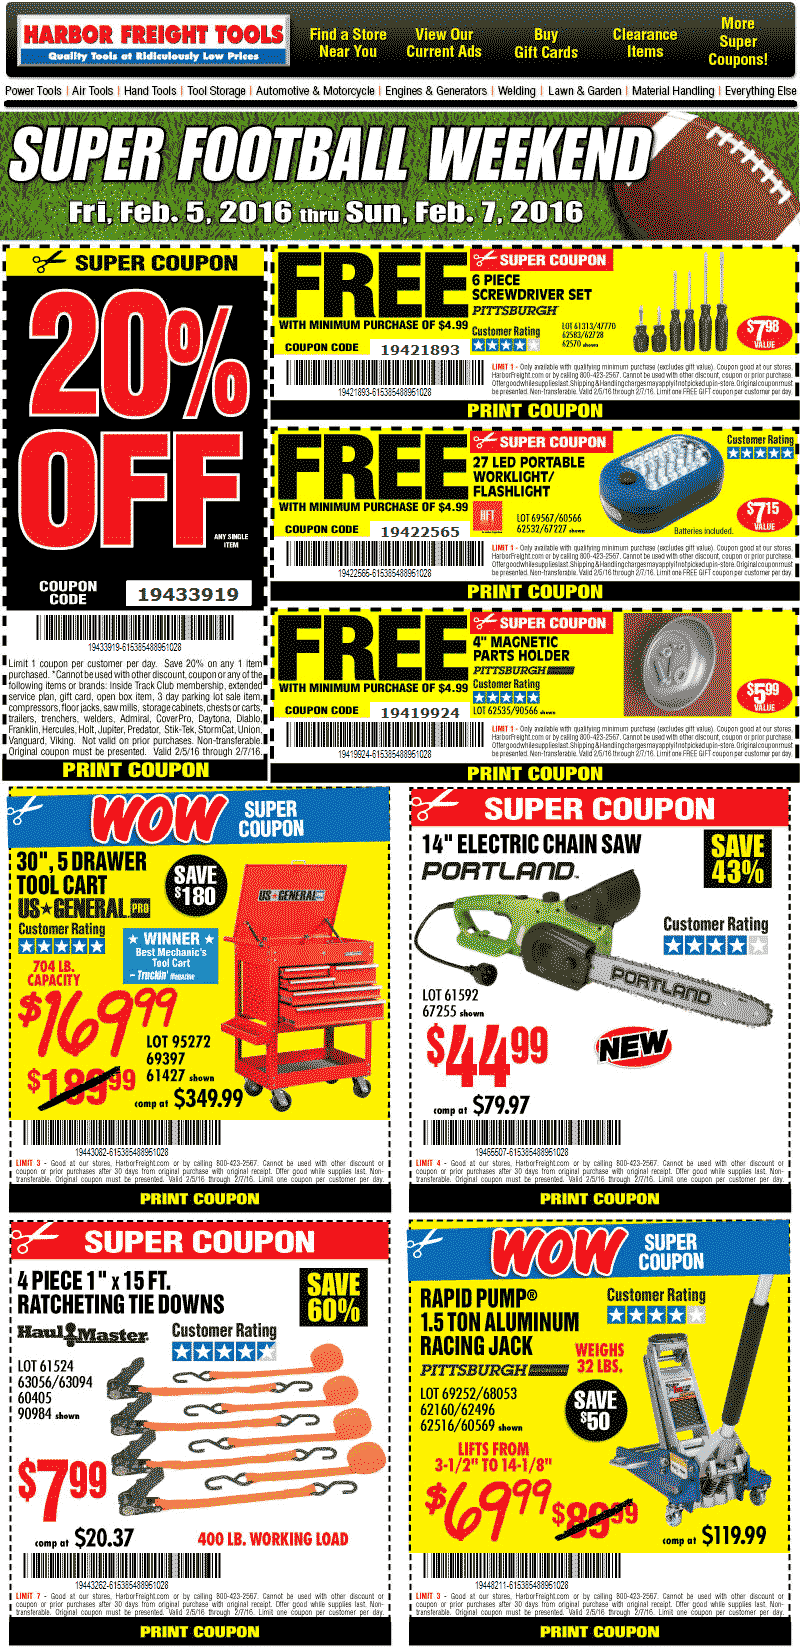 Harbor Freight Coupon October 2016 20% off a single item & more at Harbor Freight Tools